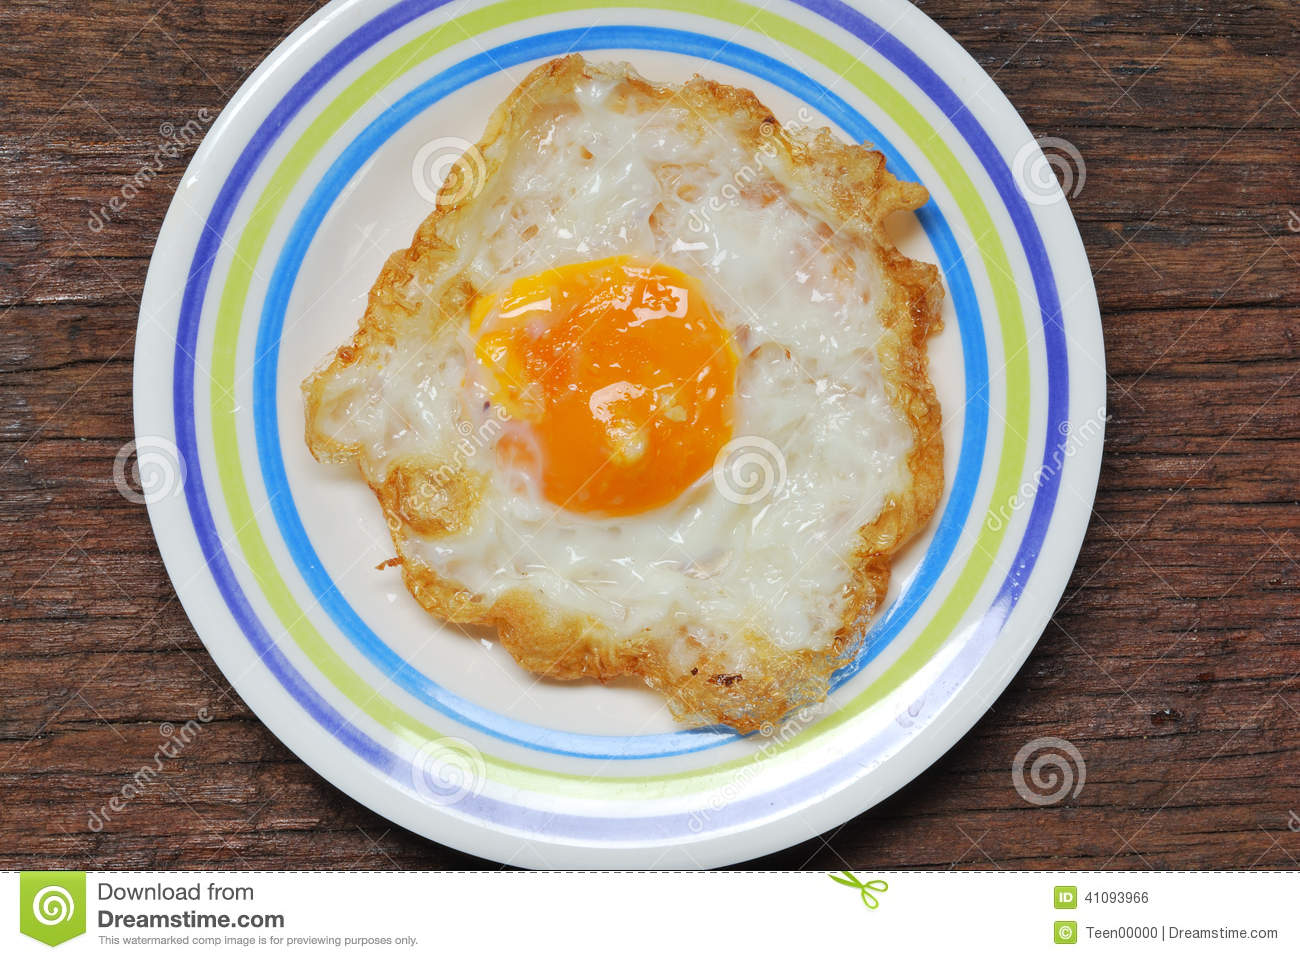 Fried Eggs On White Plate Stock Photo - Download Image Now ...  |Fried Eggs On A Plate